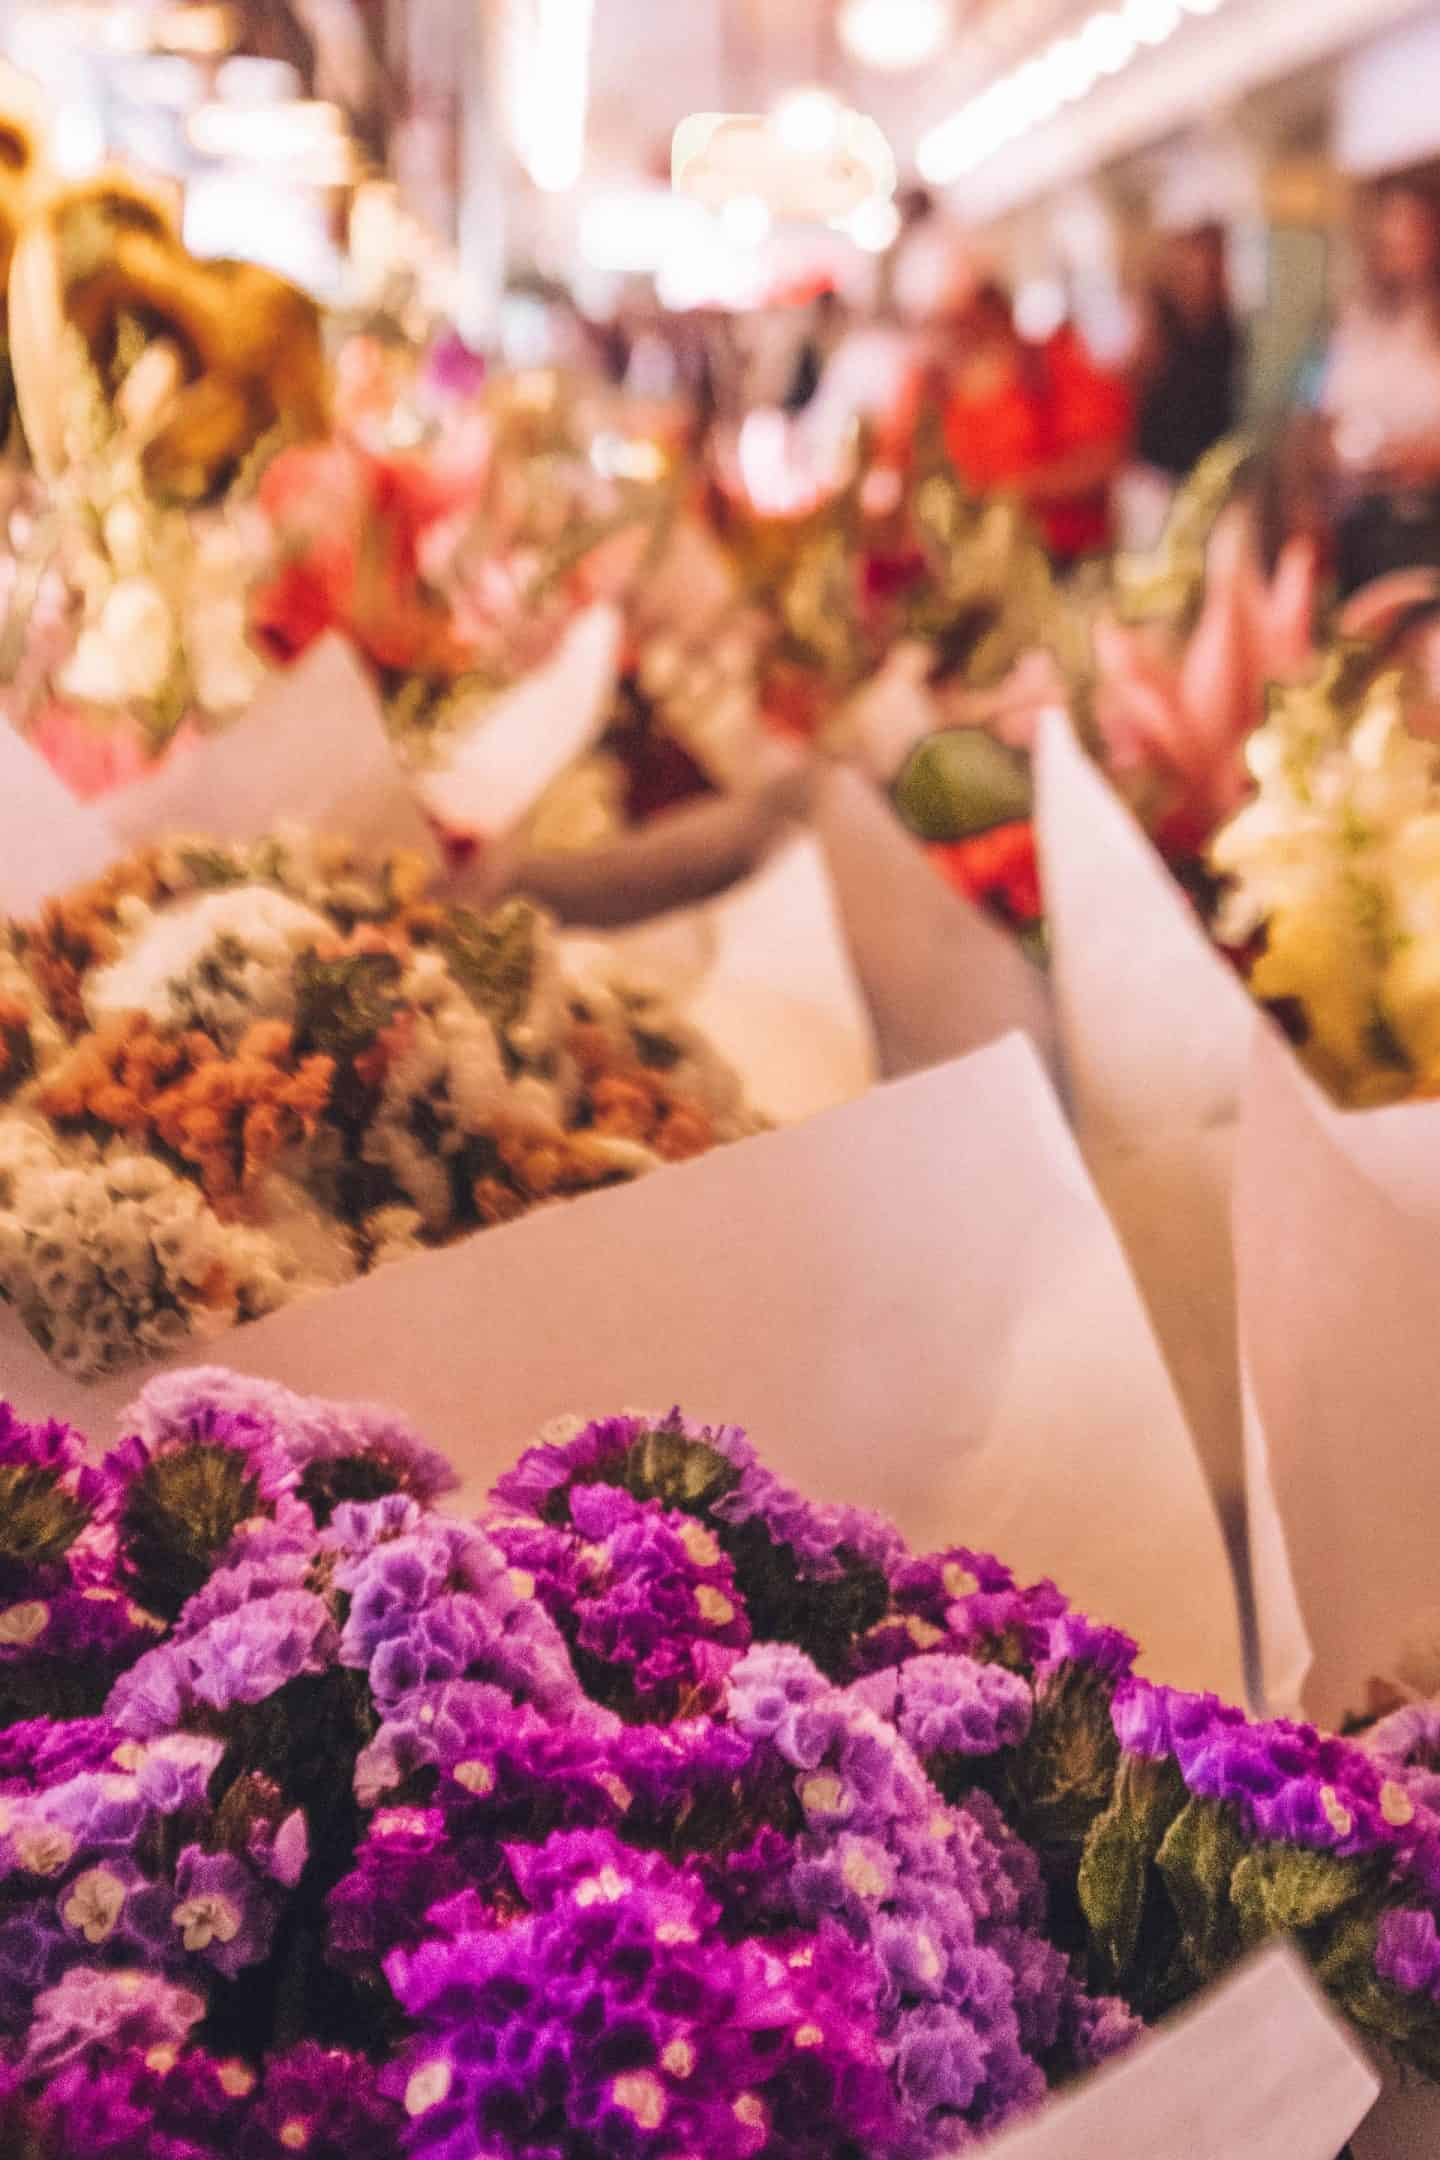 beautiful, brightly colored flowers at the farmers market